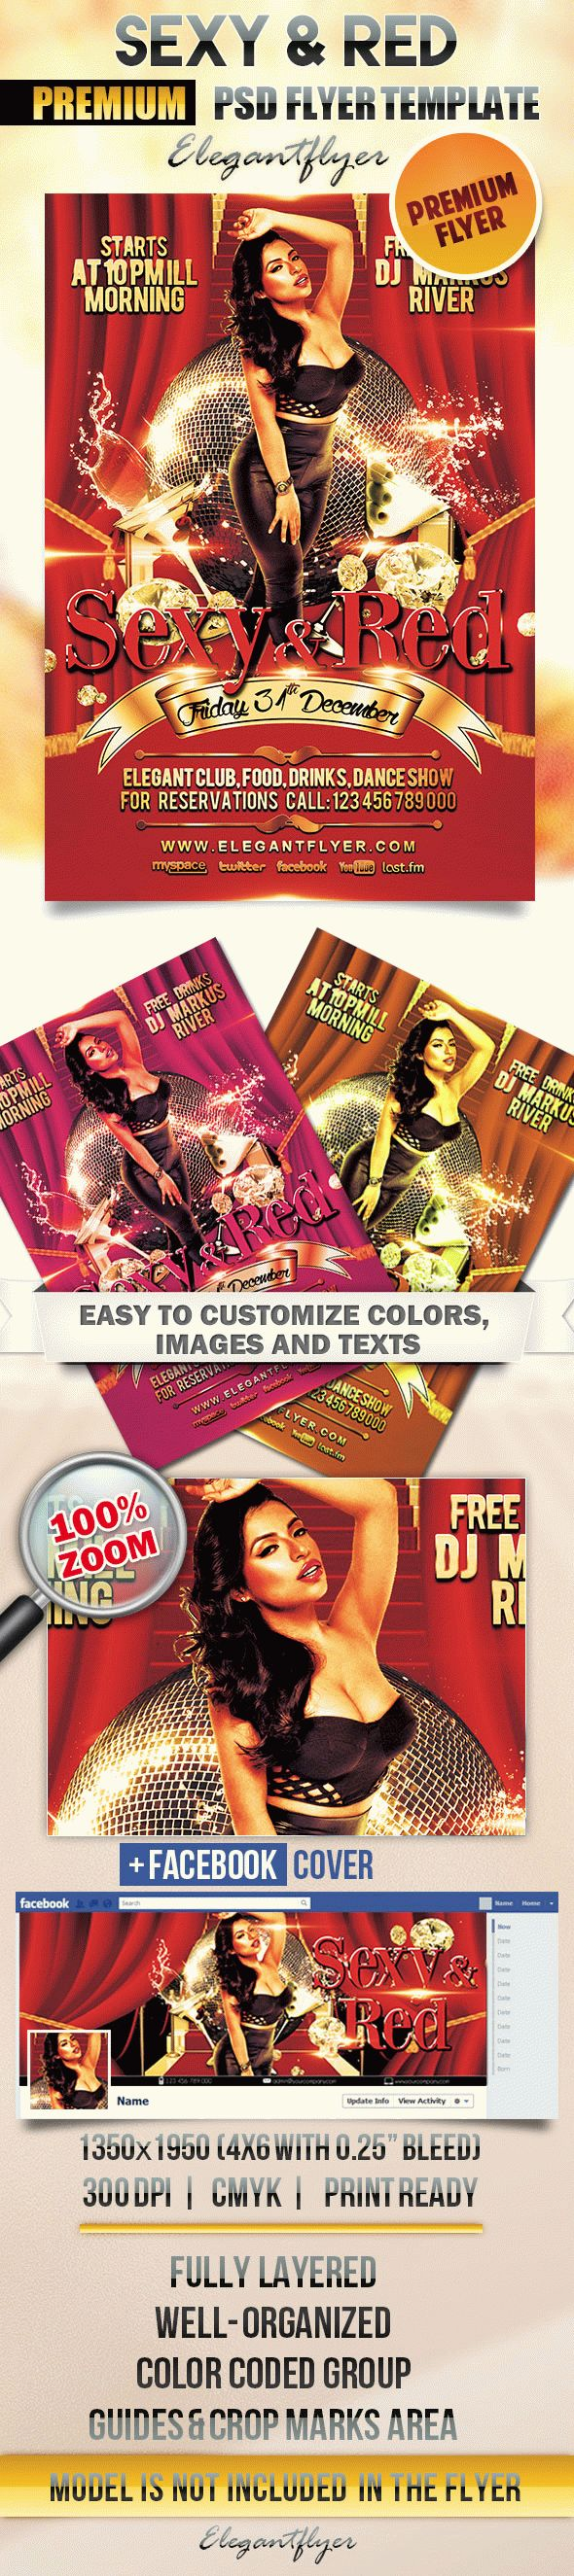 Sexy and Red Flyer PSD Template Facebook Cover by ElegantFlyer – Red Flyer Template